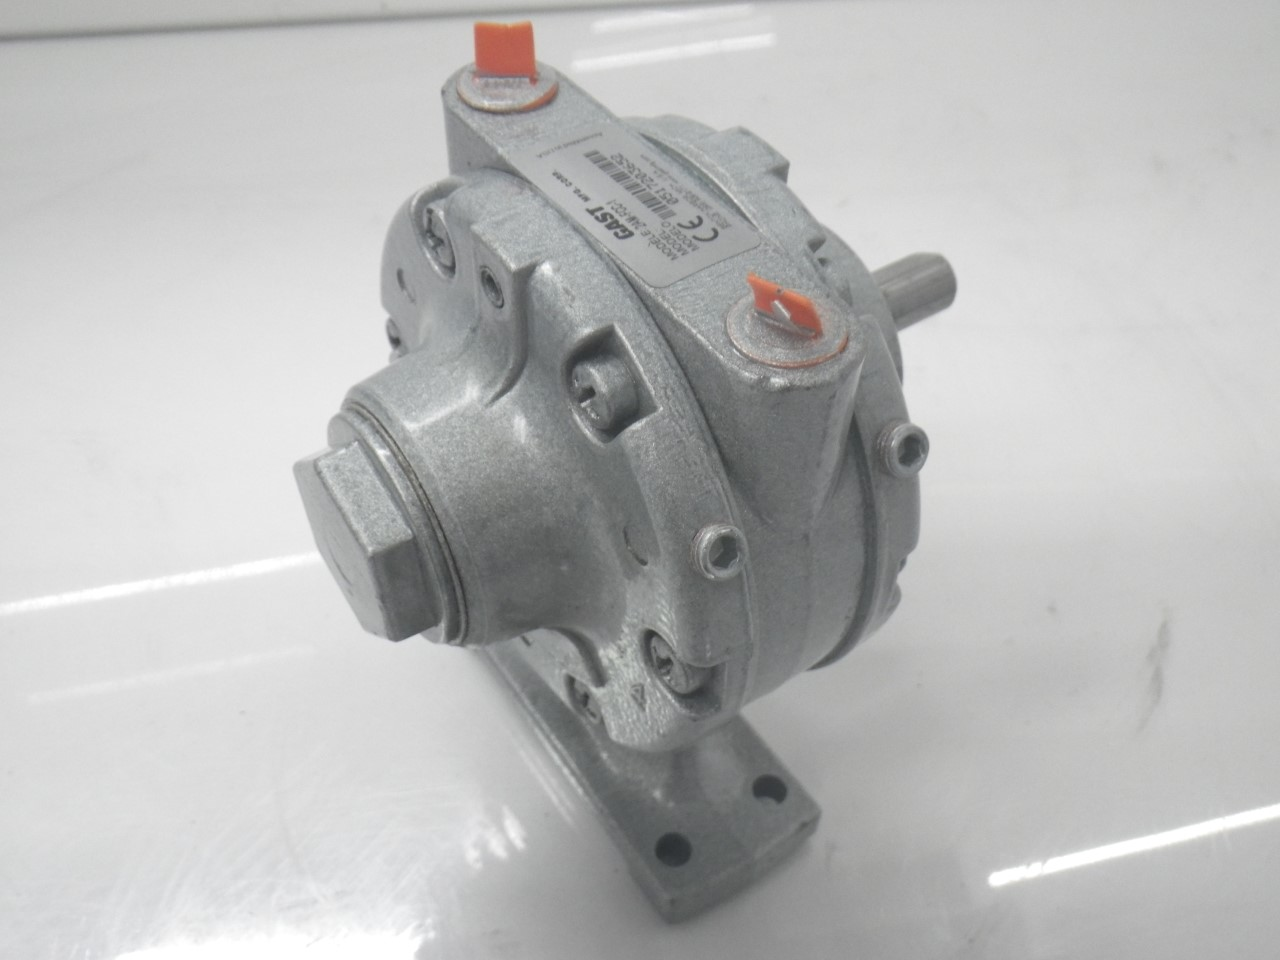 IMGP11832AM-FCC-1 Gast Air Motor (Used Tested) (Very Good Condition) (3)